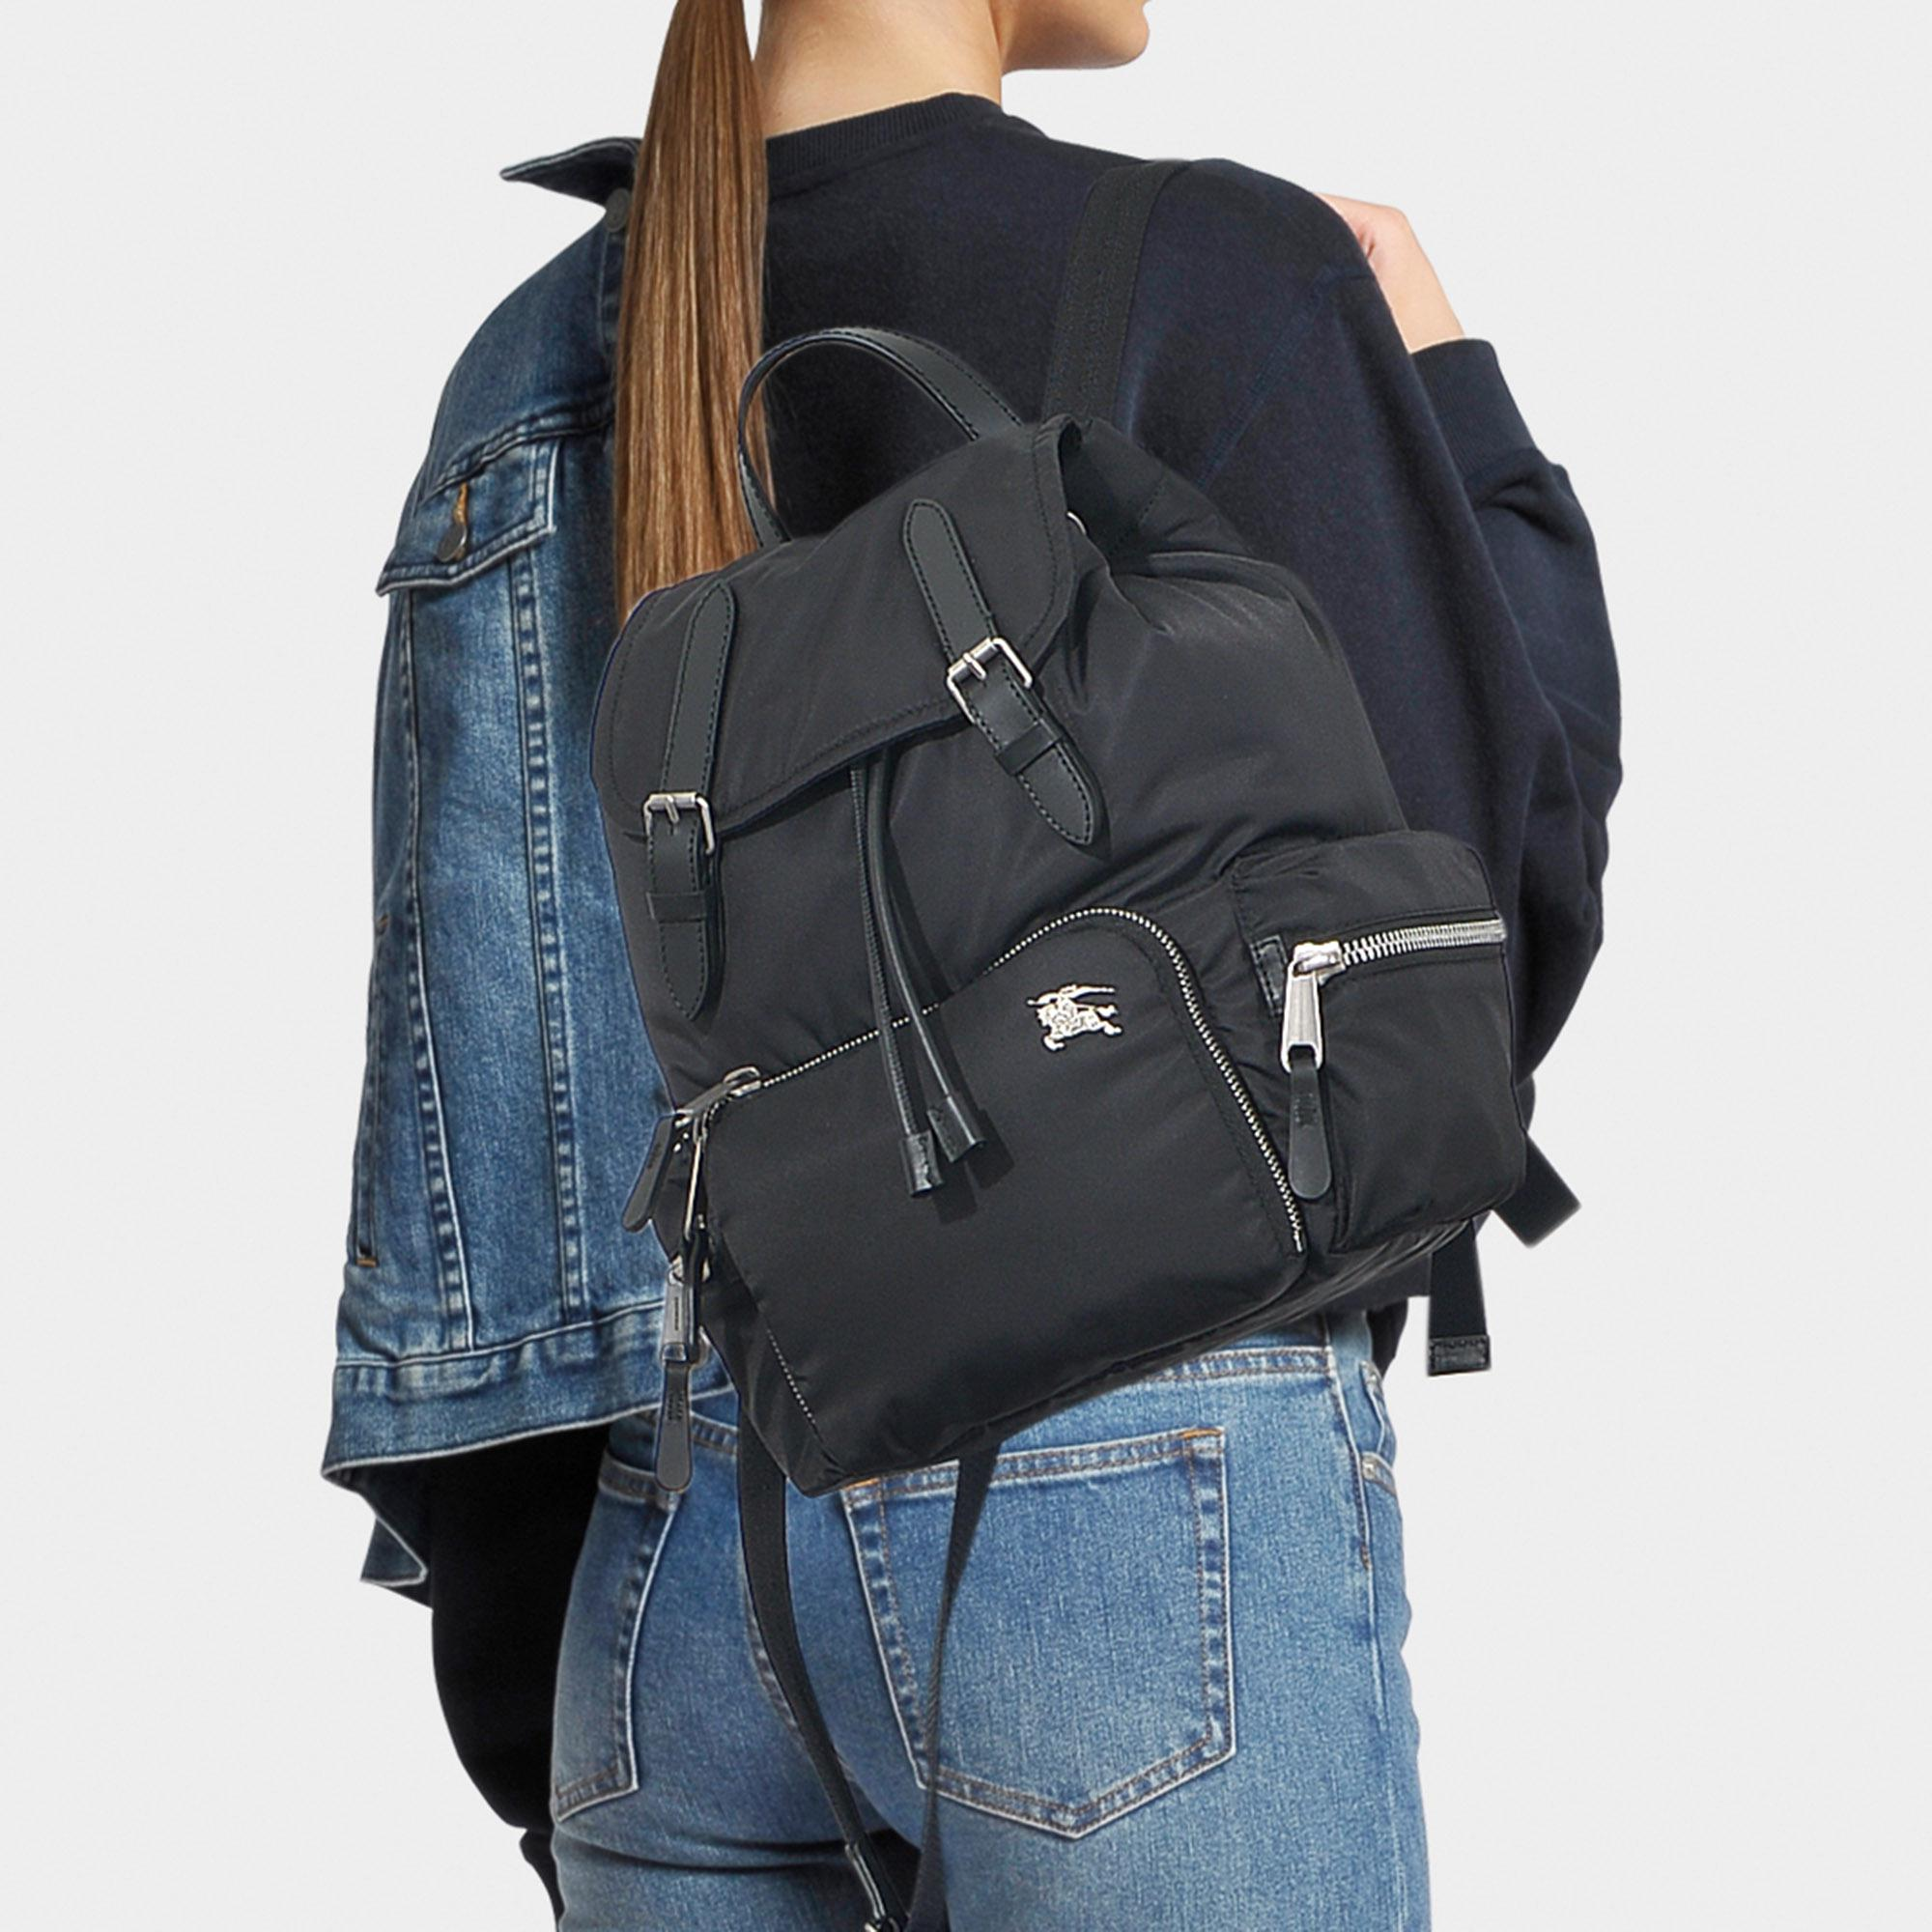 9a8125debf8a Burberry - Black The Medium Rucksack In Puffer Nylon And Leather - Lyst.  View fullscreen